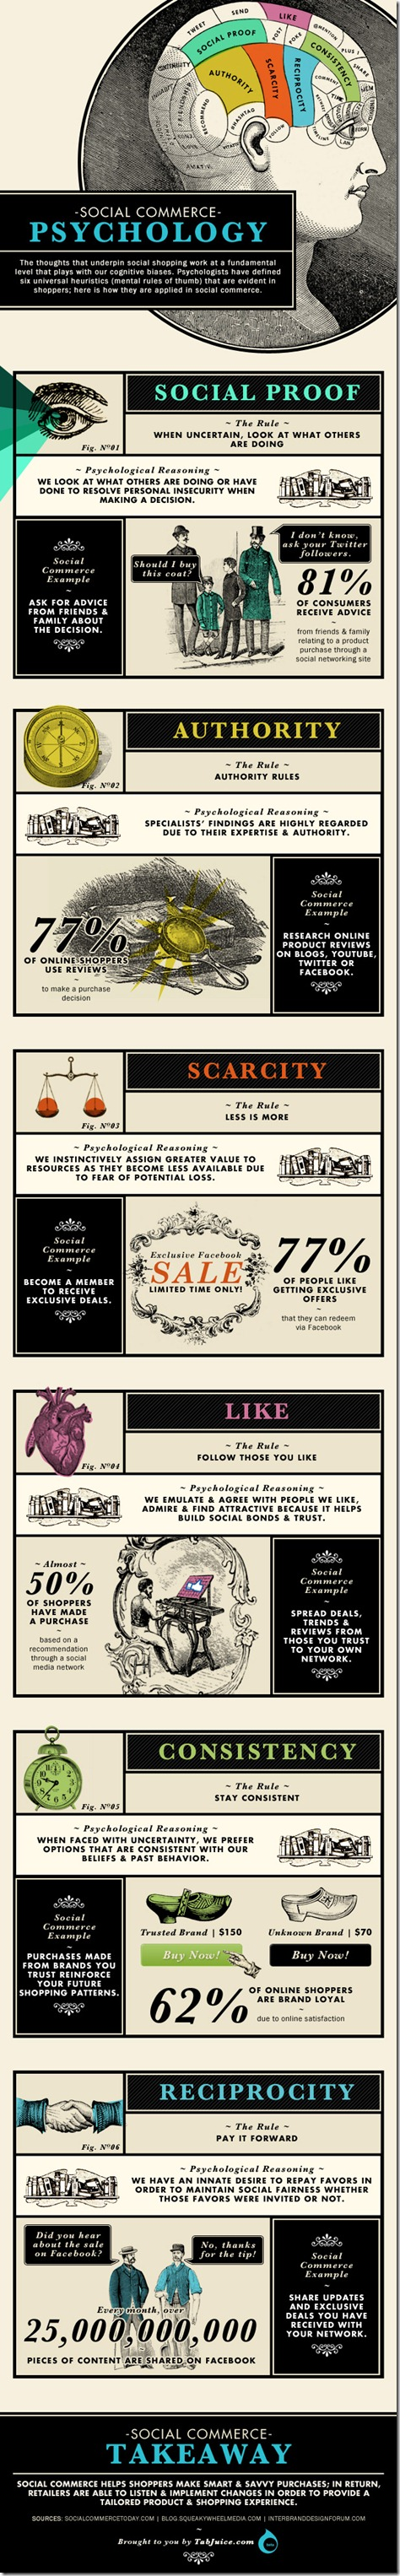 Social_Commerce_Psychology_Infographic1